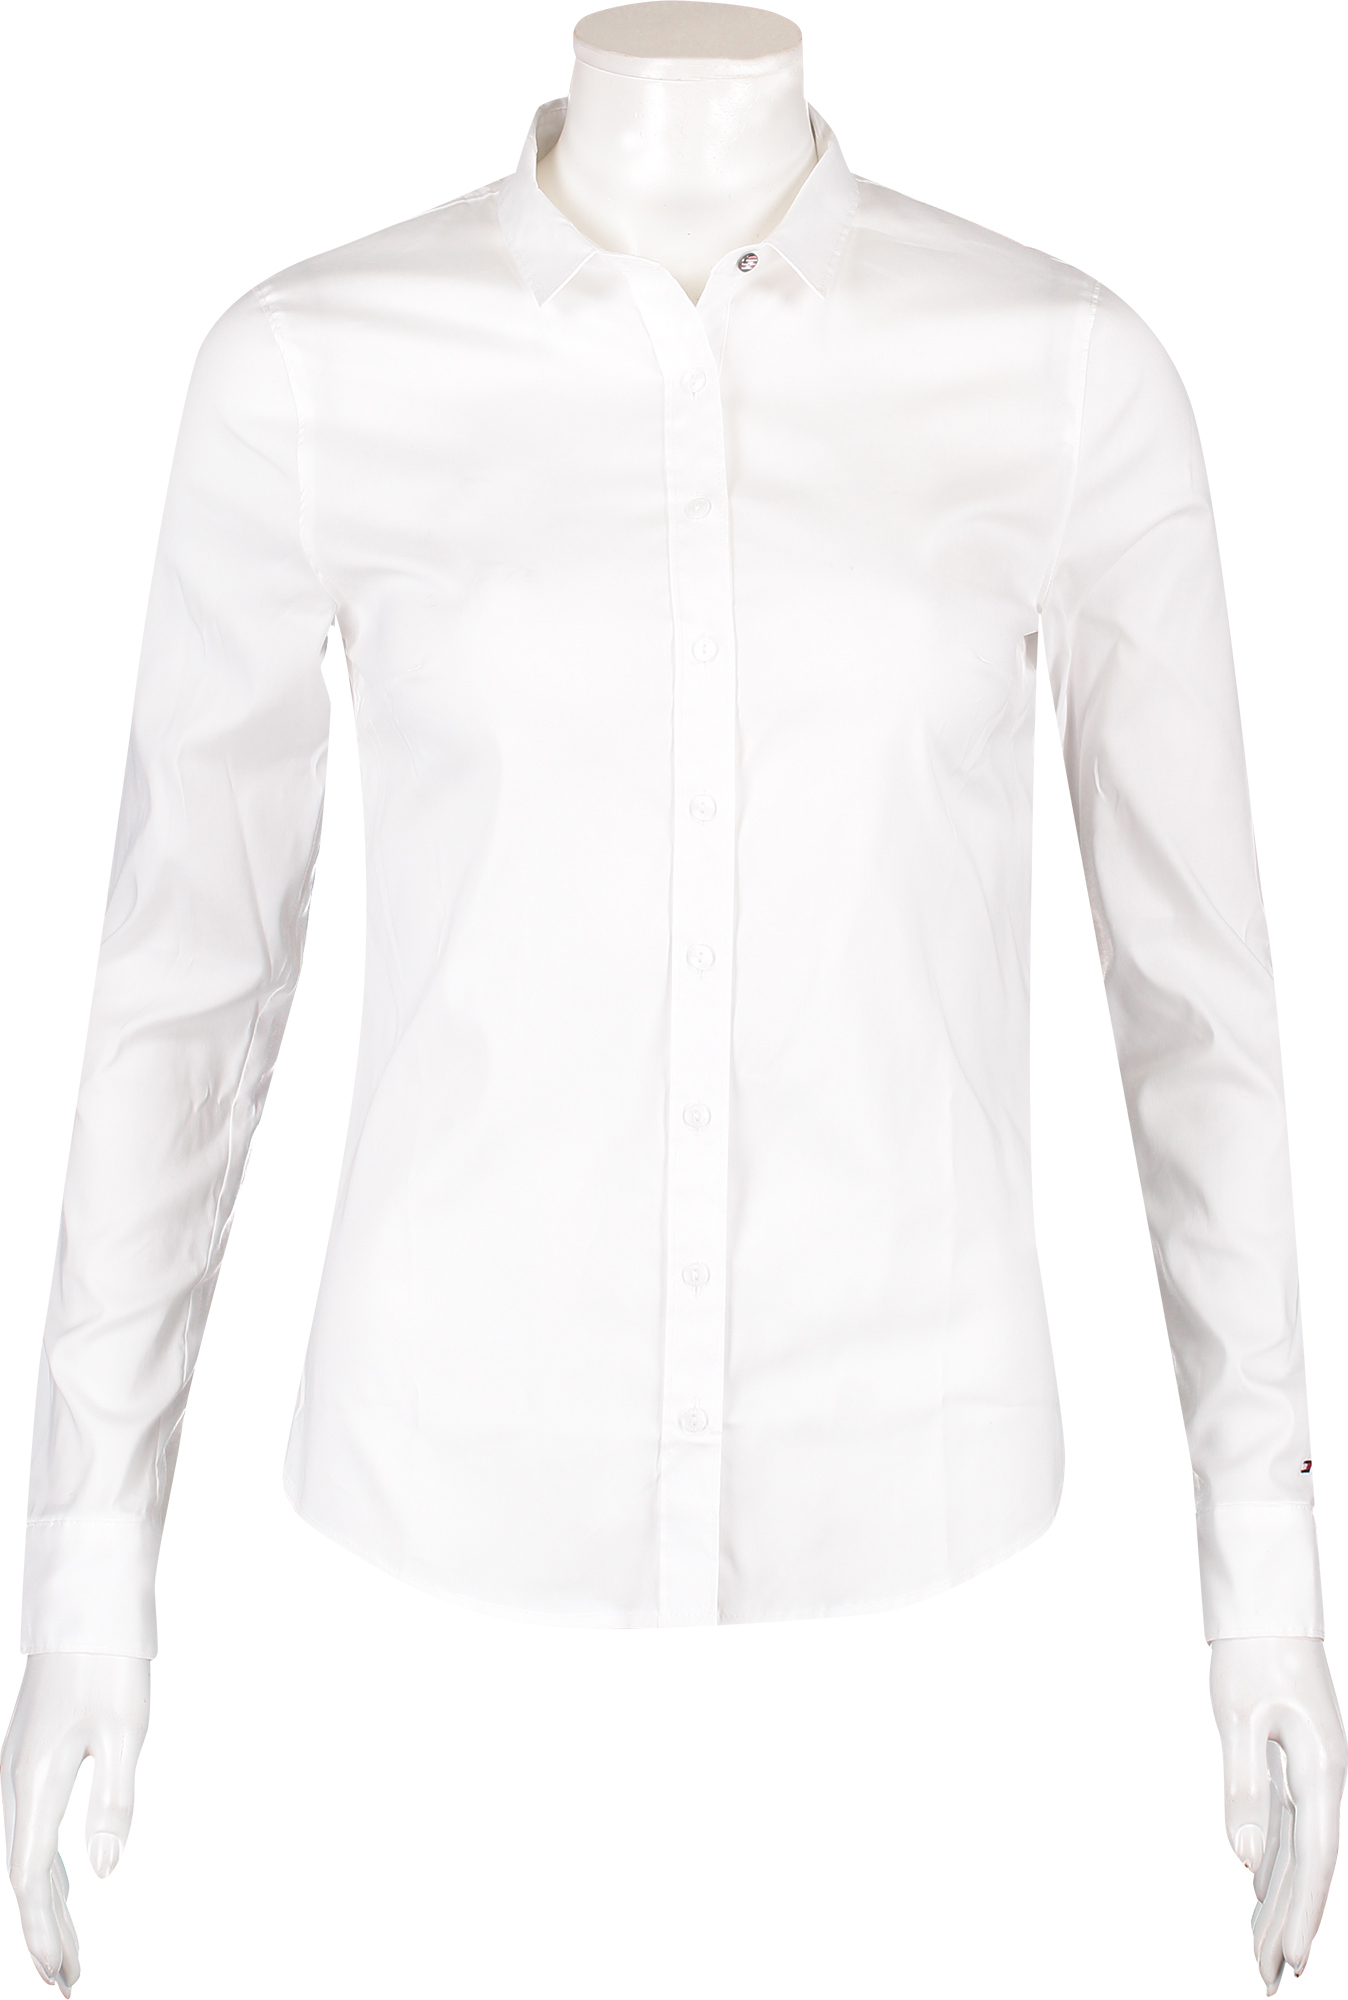 Piet Zoomers, Tommy Hilfiger dames blouse